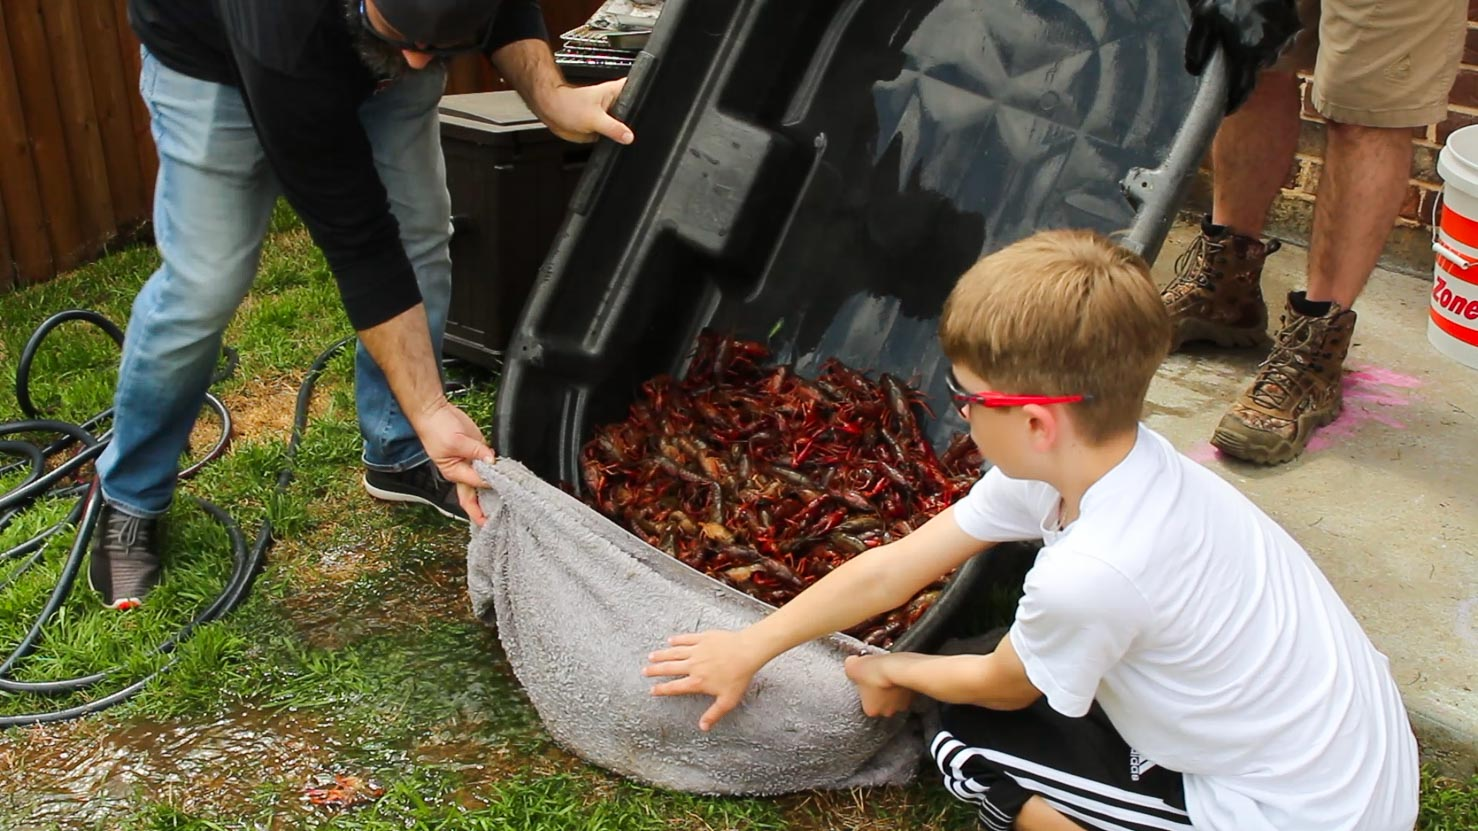 Draining the cleaned crawfish